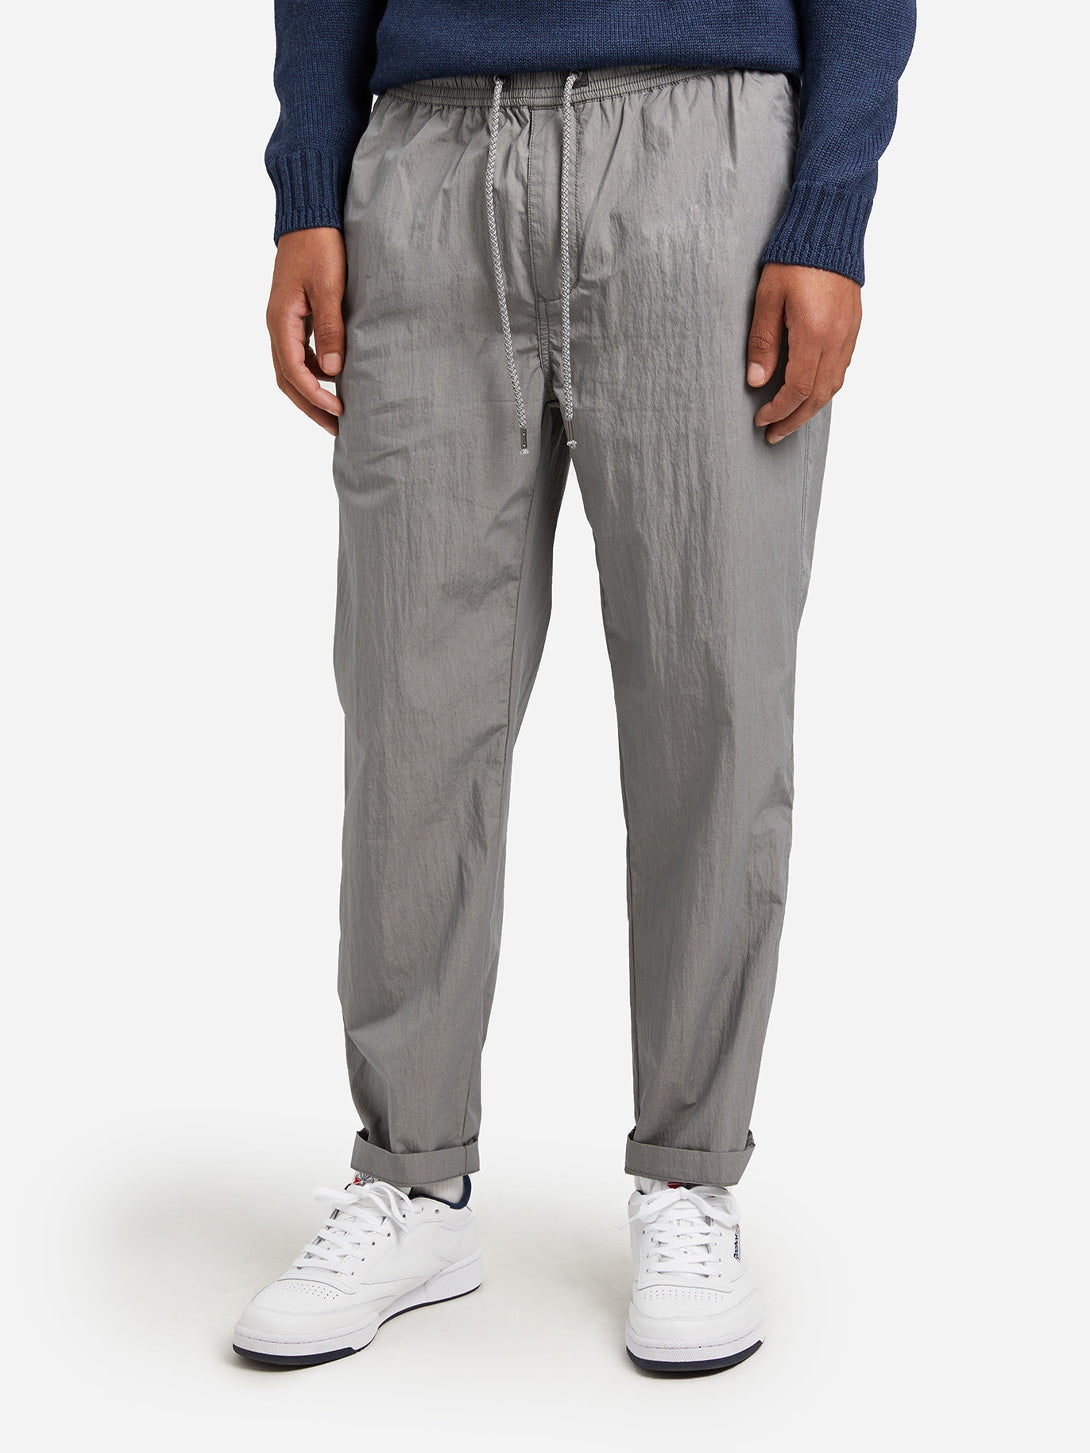 LIGHT GREY mens chino pants crosby pant ons clothing